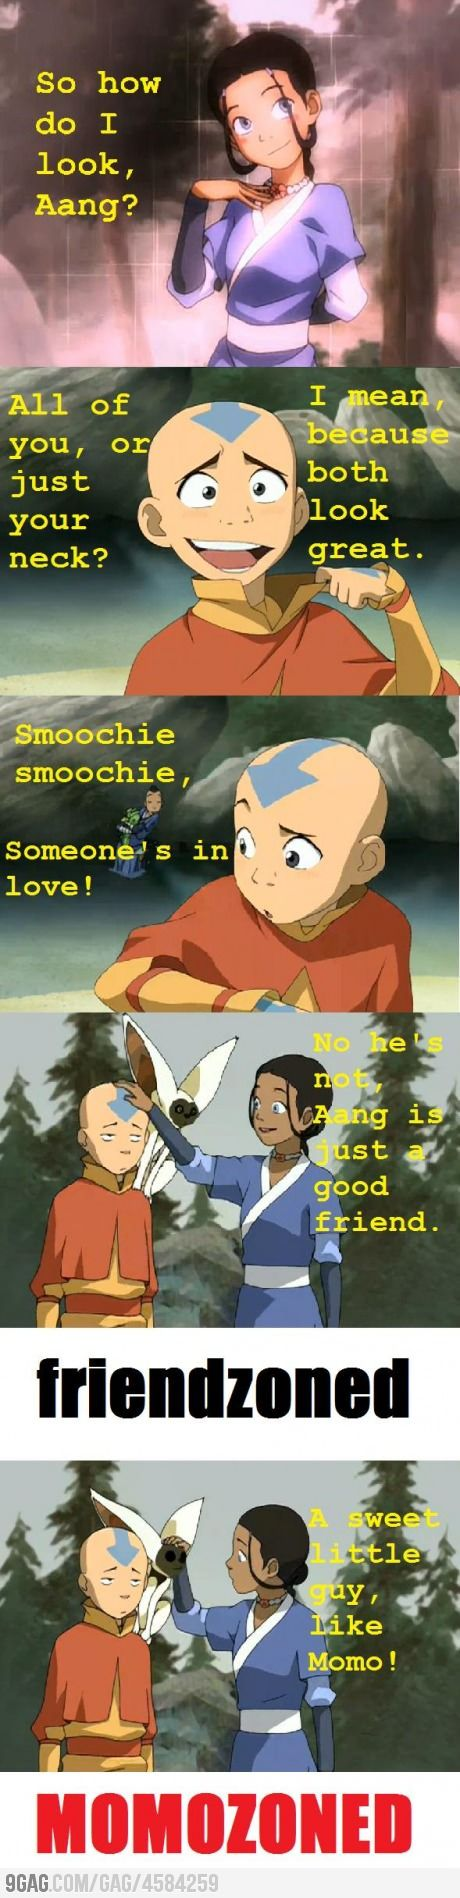 Katara, you're such a little hoebag!! momozoning the avatar. i mean come on.